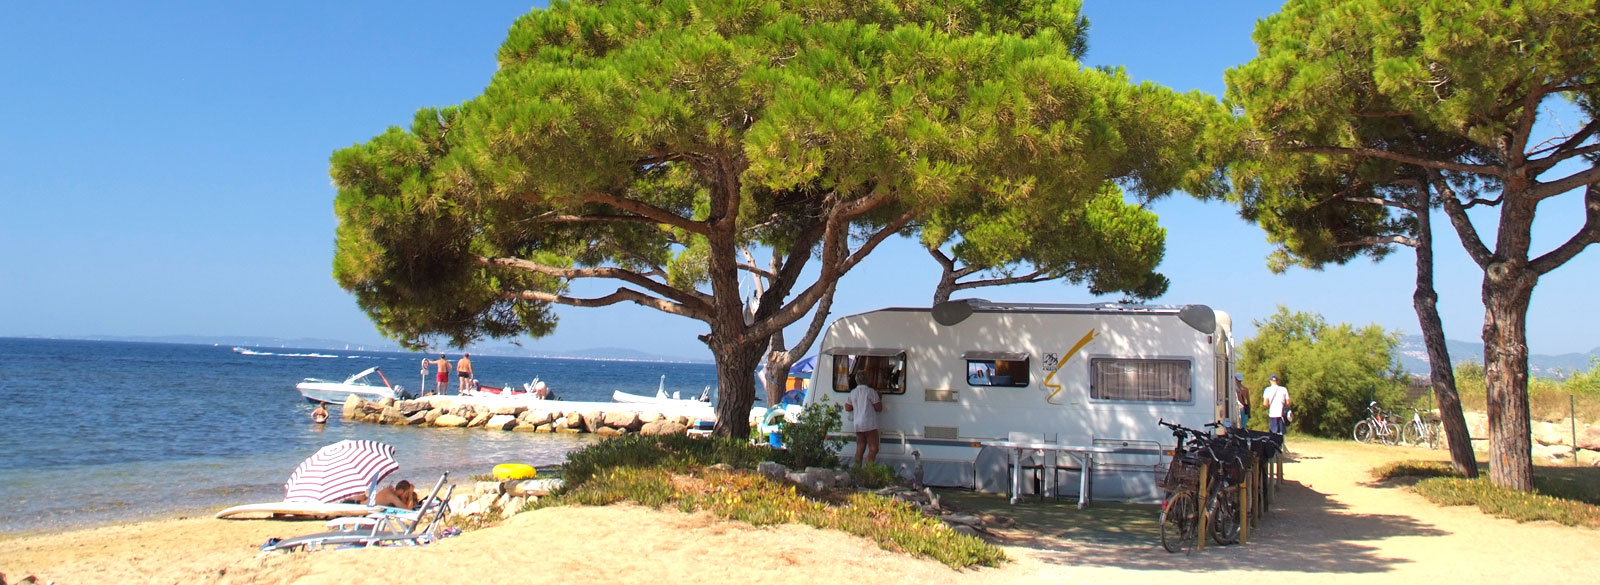 camping hyeres - Vue aerienne du camping